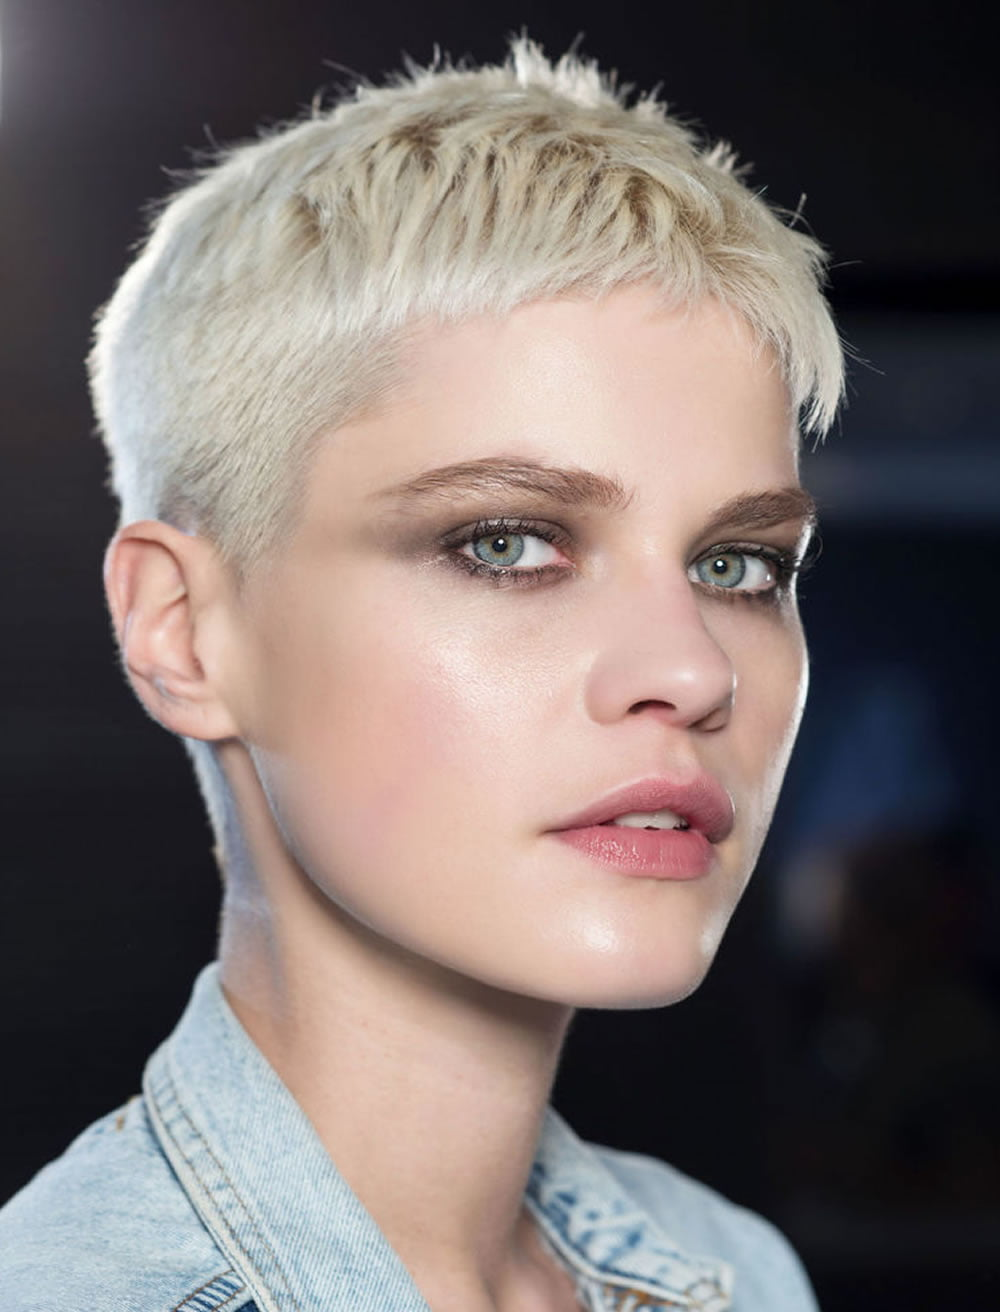 Pictures Of Very Short Pixie Haircuts  Haircuts Models Ideas